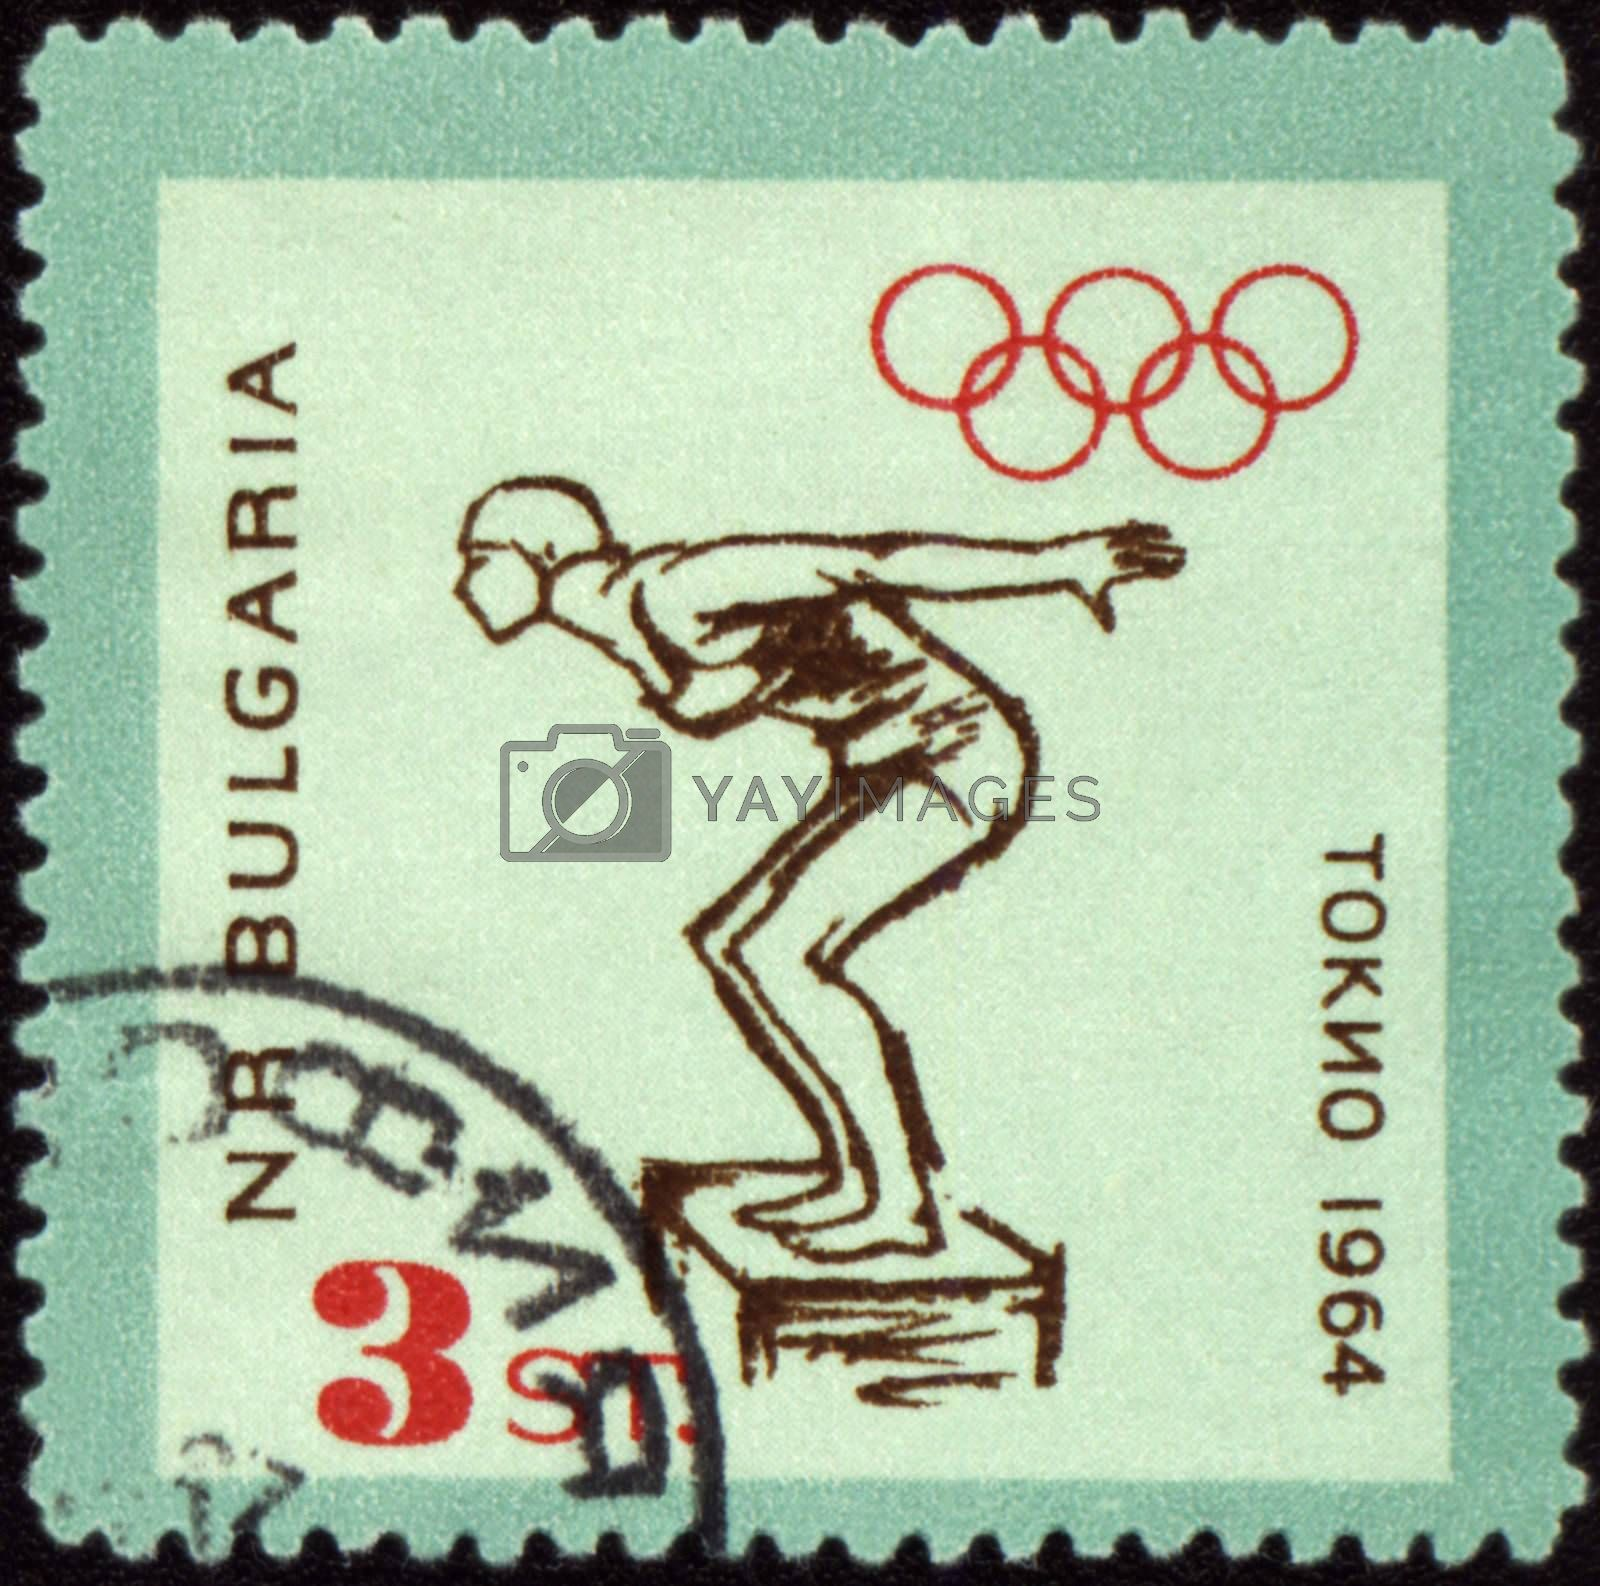 BULGARIA - CIRCA 1964: A post stamp printed in Bulgaria shows jumping swimmer, devoted to Olympic games in Tokio, series, circa 1964